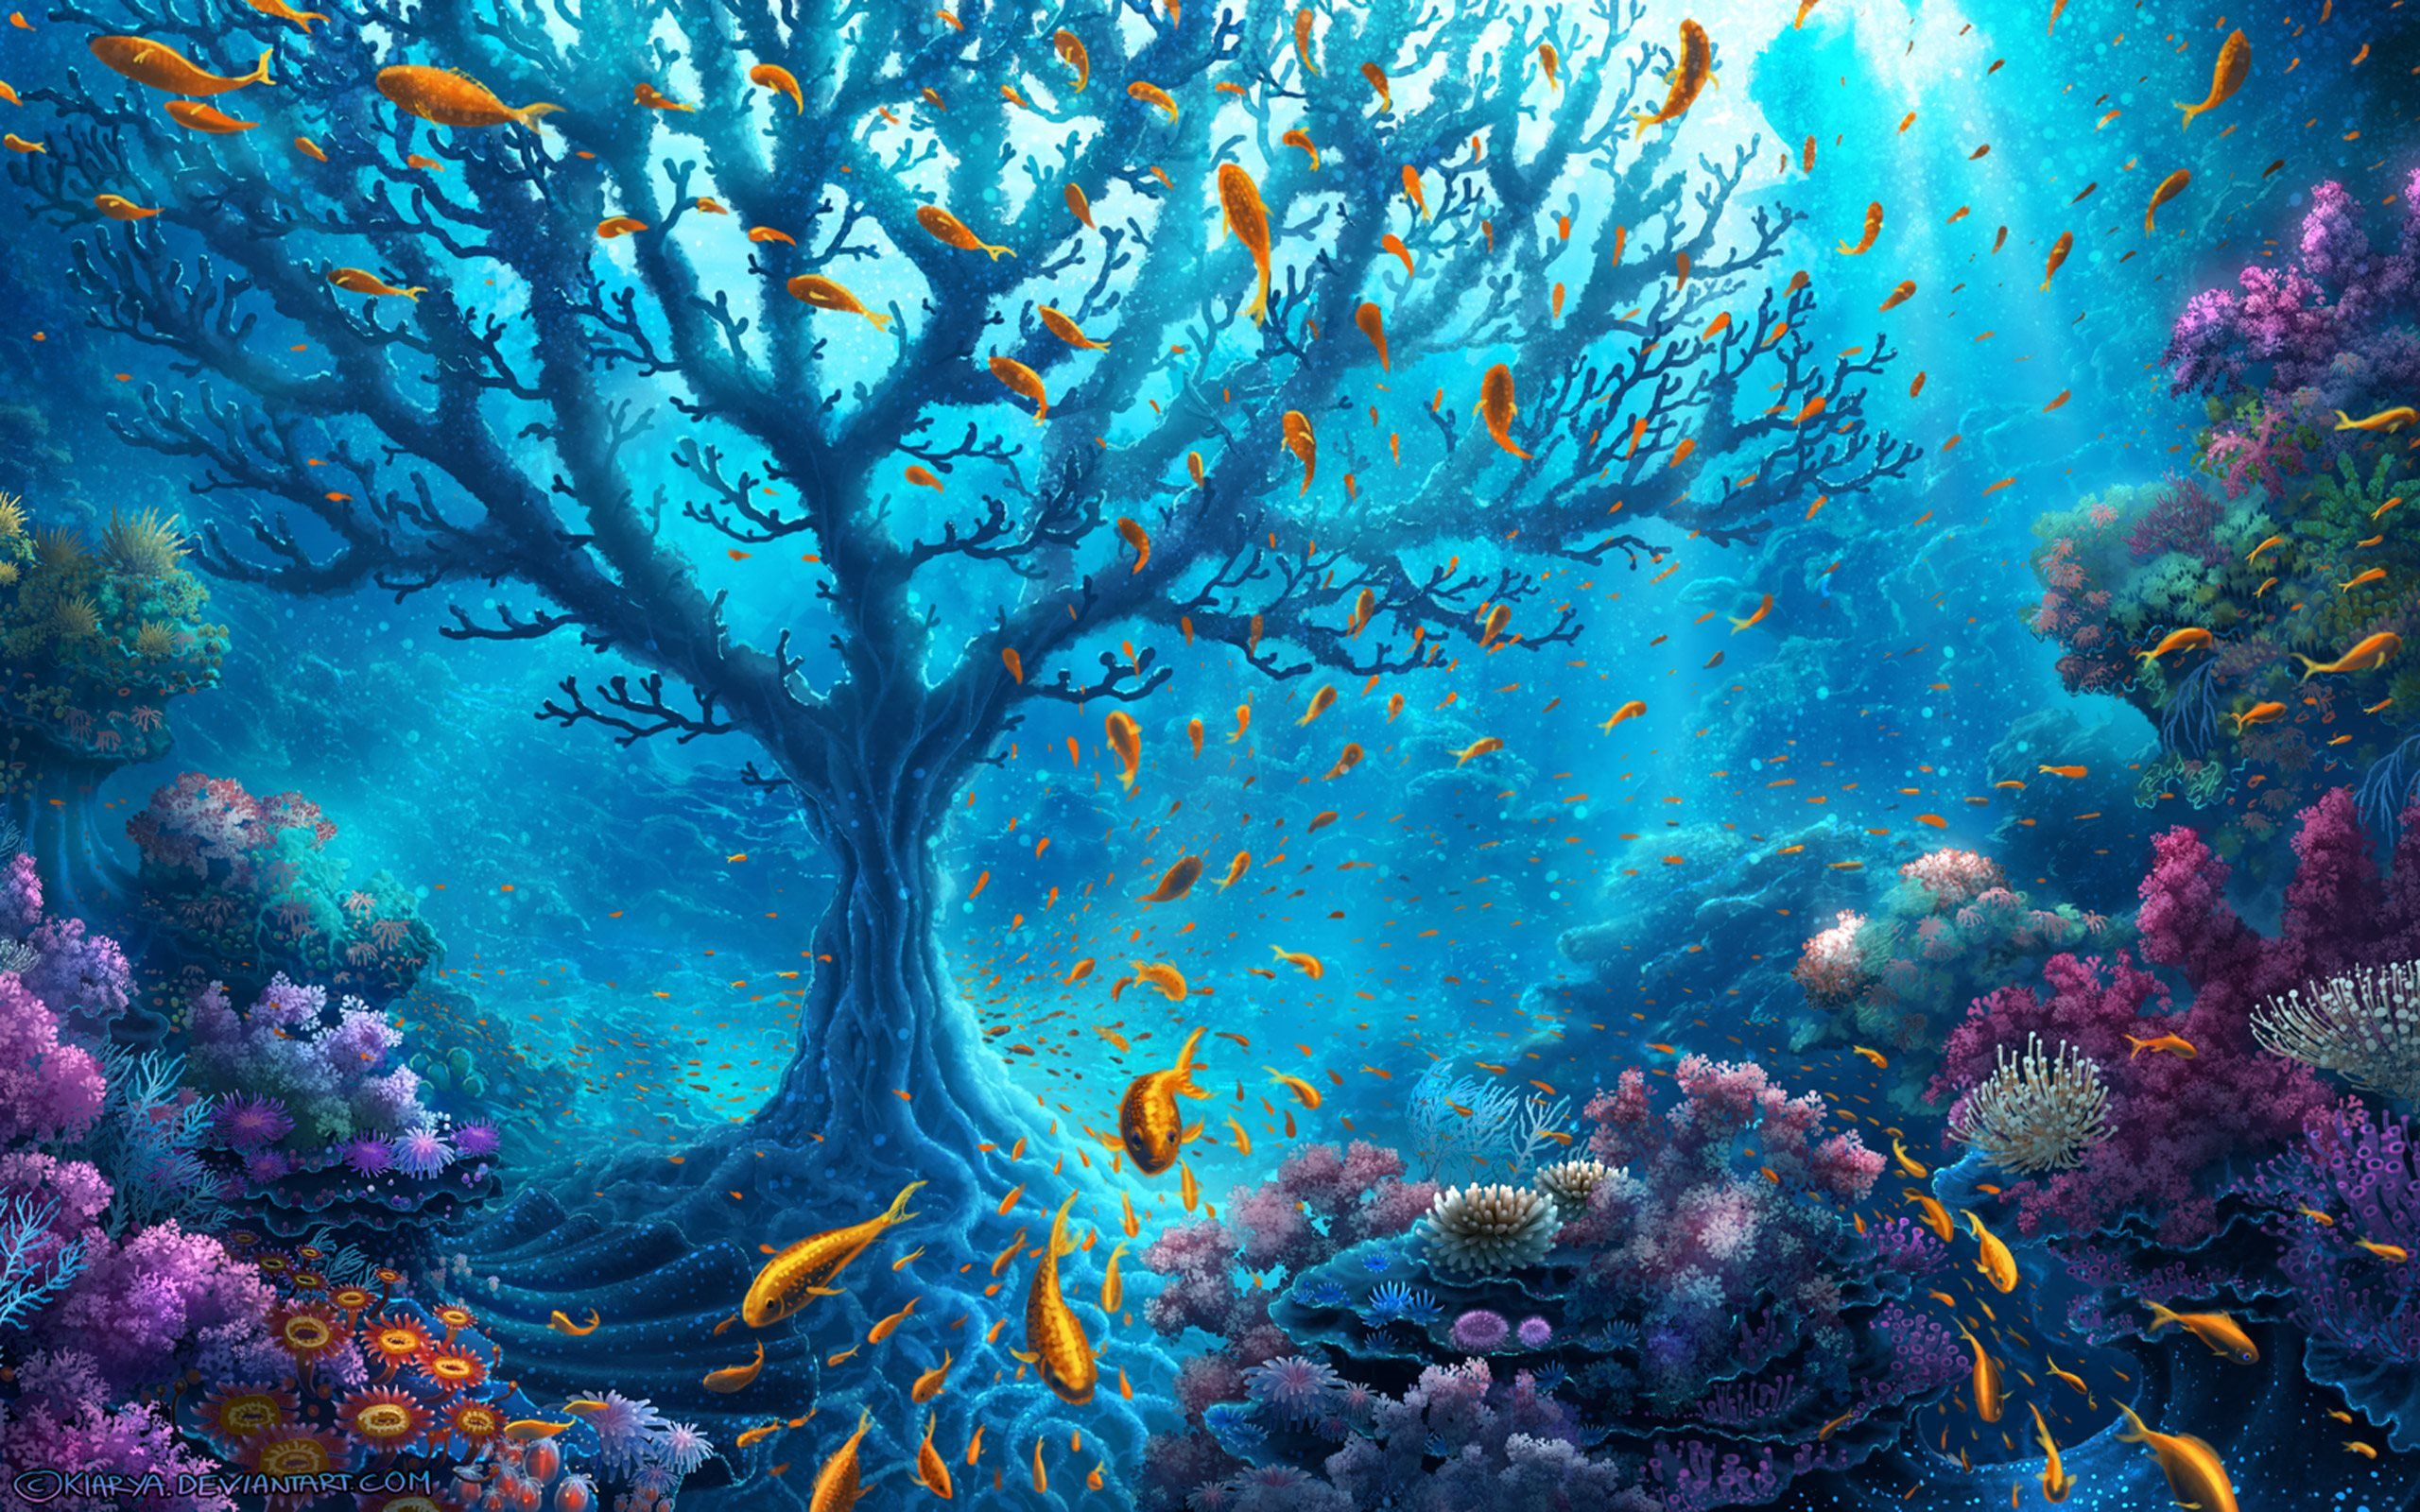 Download Wallpapers Underwater Coral Reef Fish Tree Ocean For Desktop With Resolution 2560x Underwater Wallpaper Underwater Painting Fantasy Art Landscapes